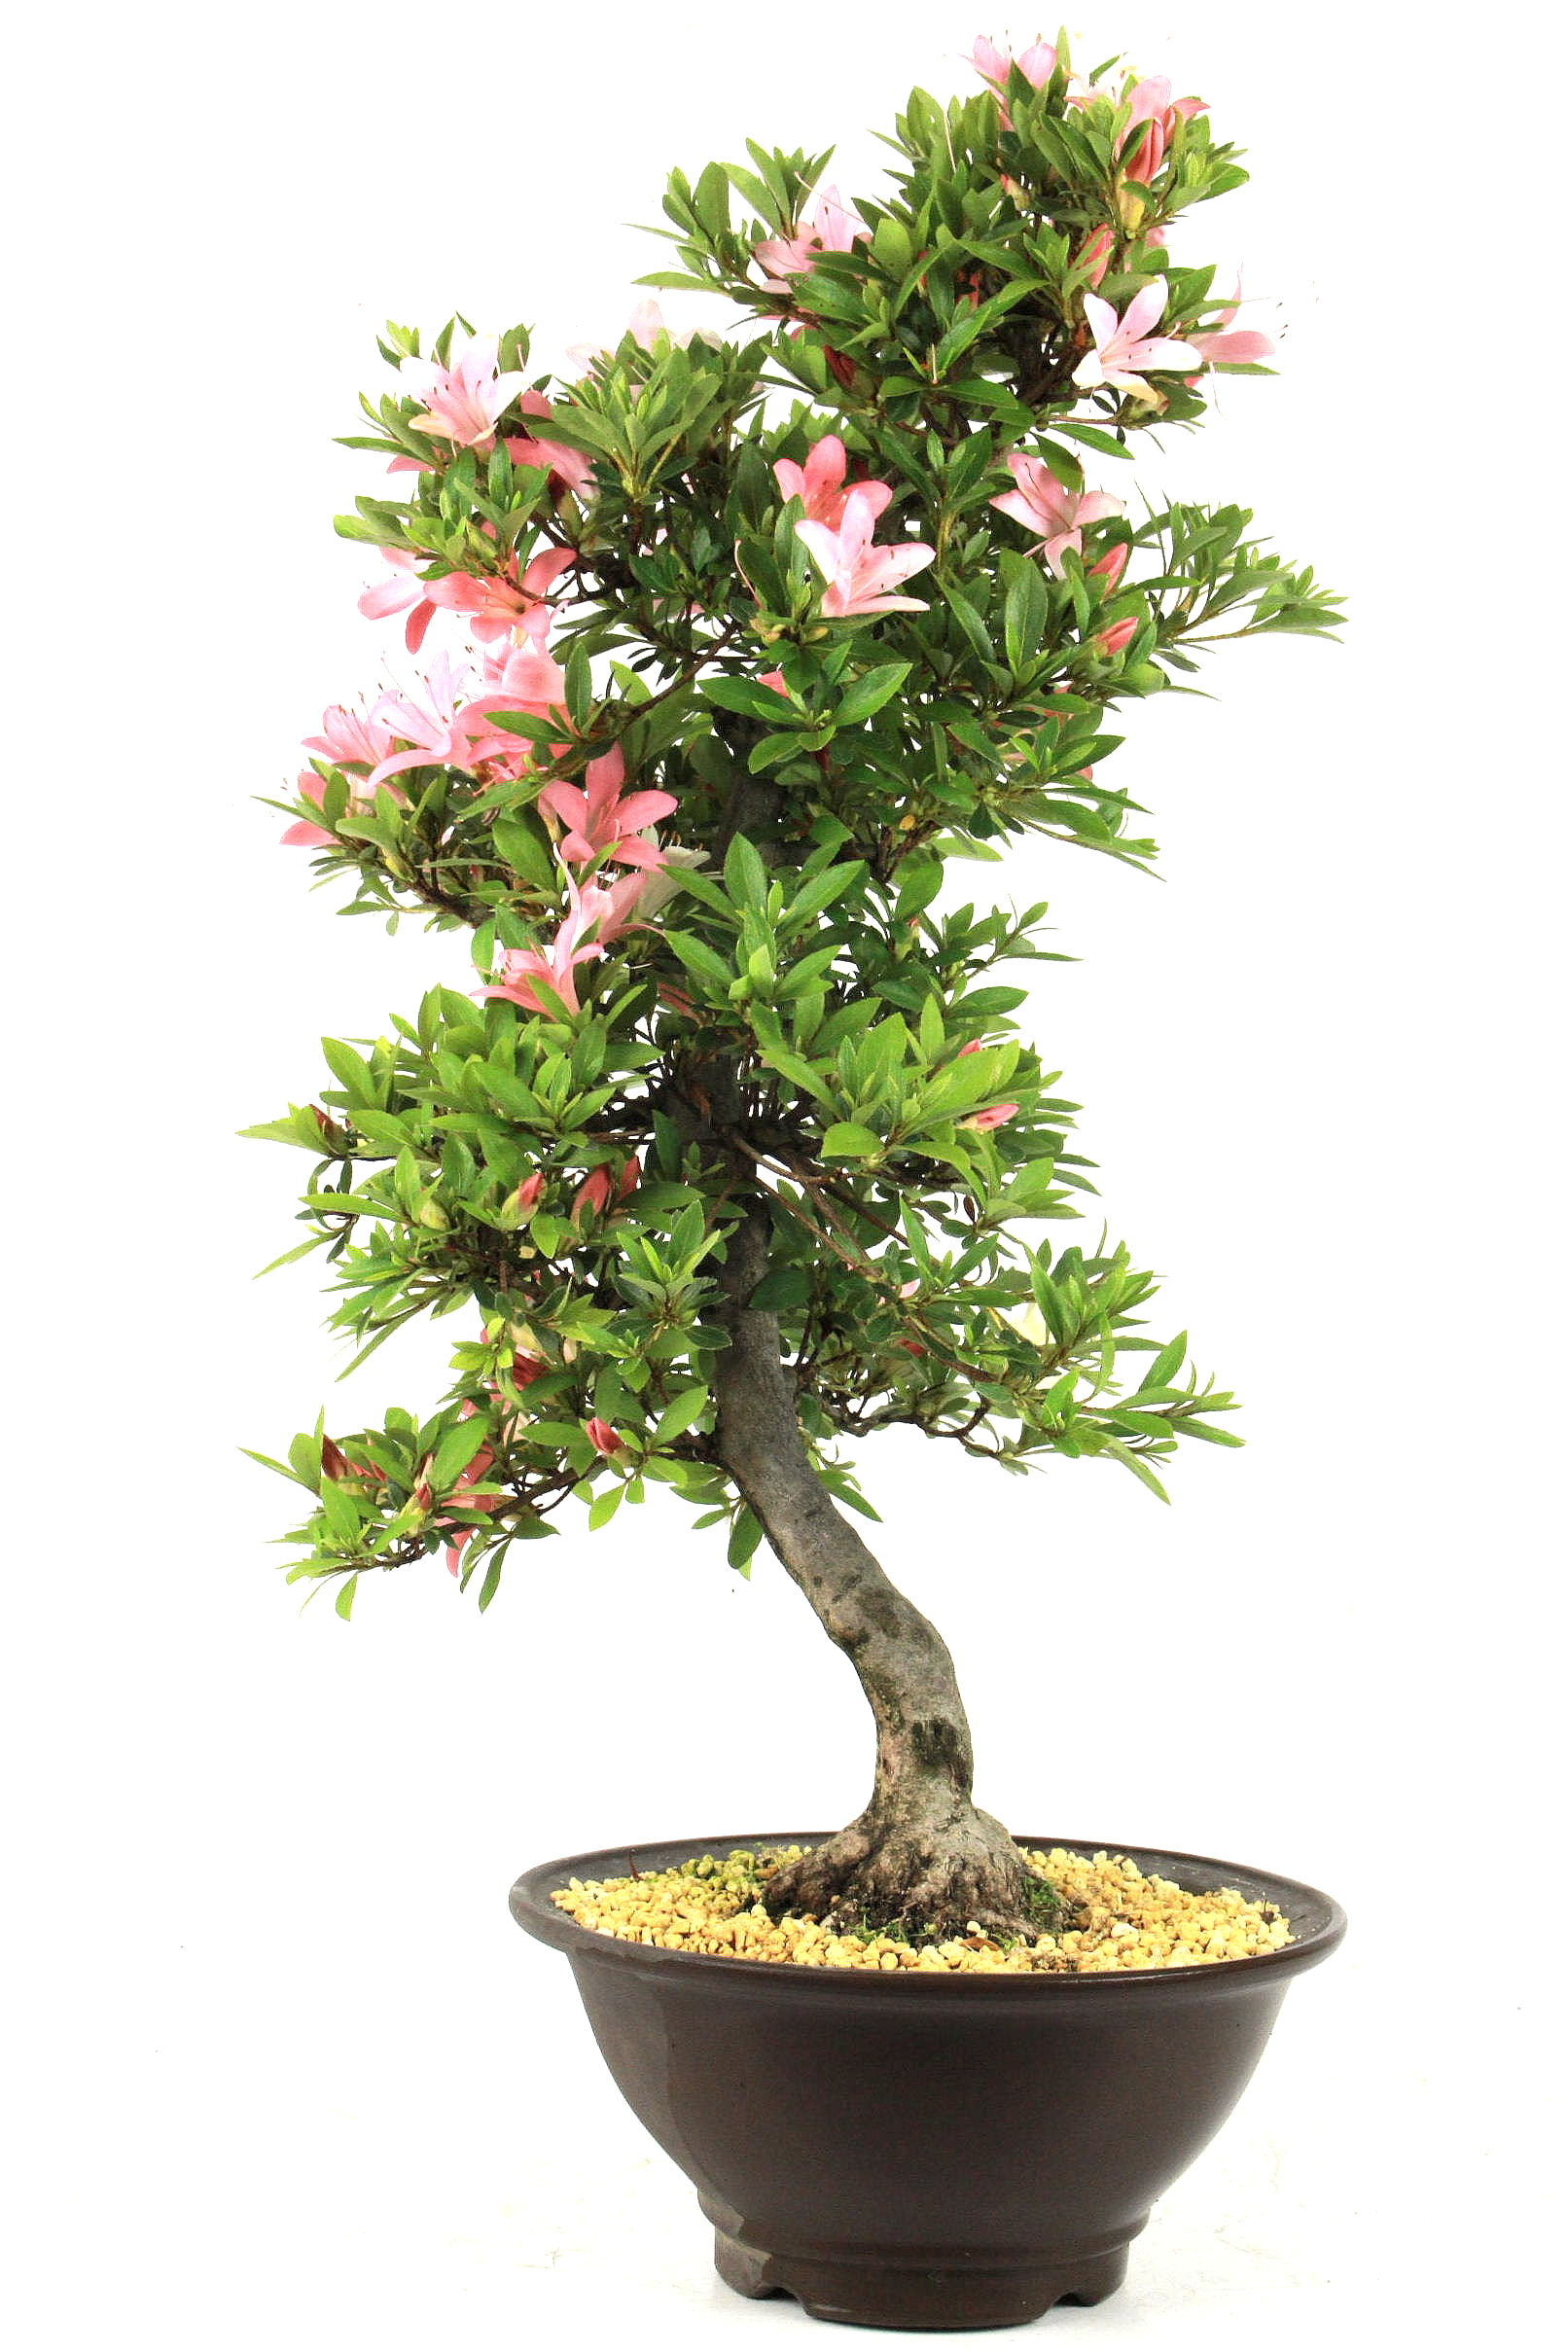 azalee rhododendron indicum 61 cm 222 bei oyaki bonsai kaufen. Black Bedroom Furniture Sets. Home Design Ideas